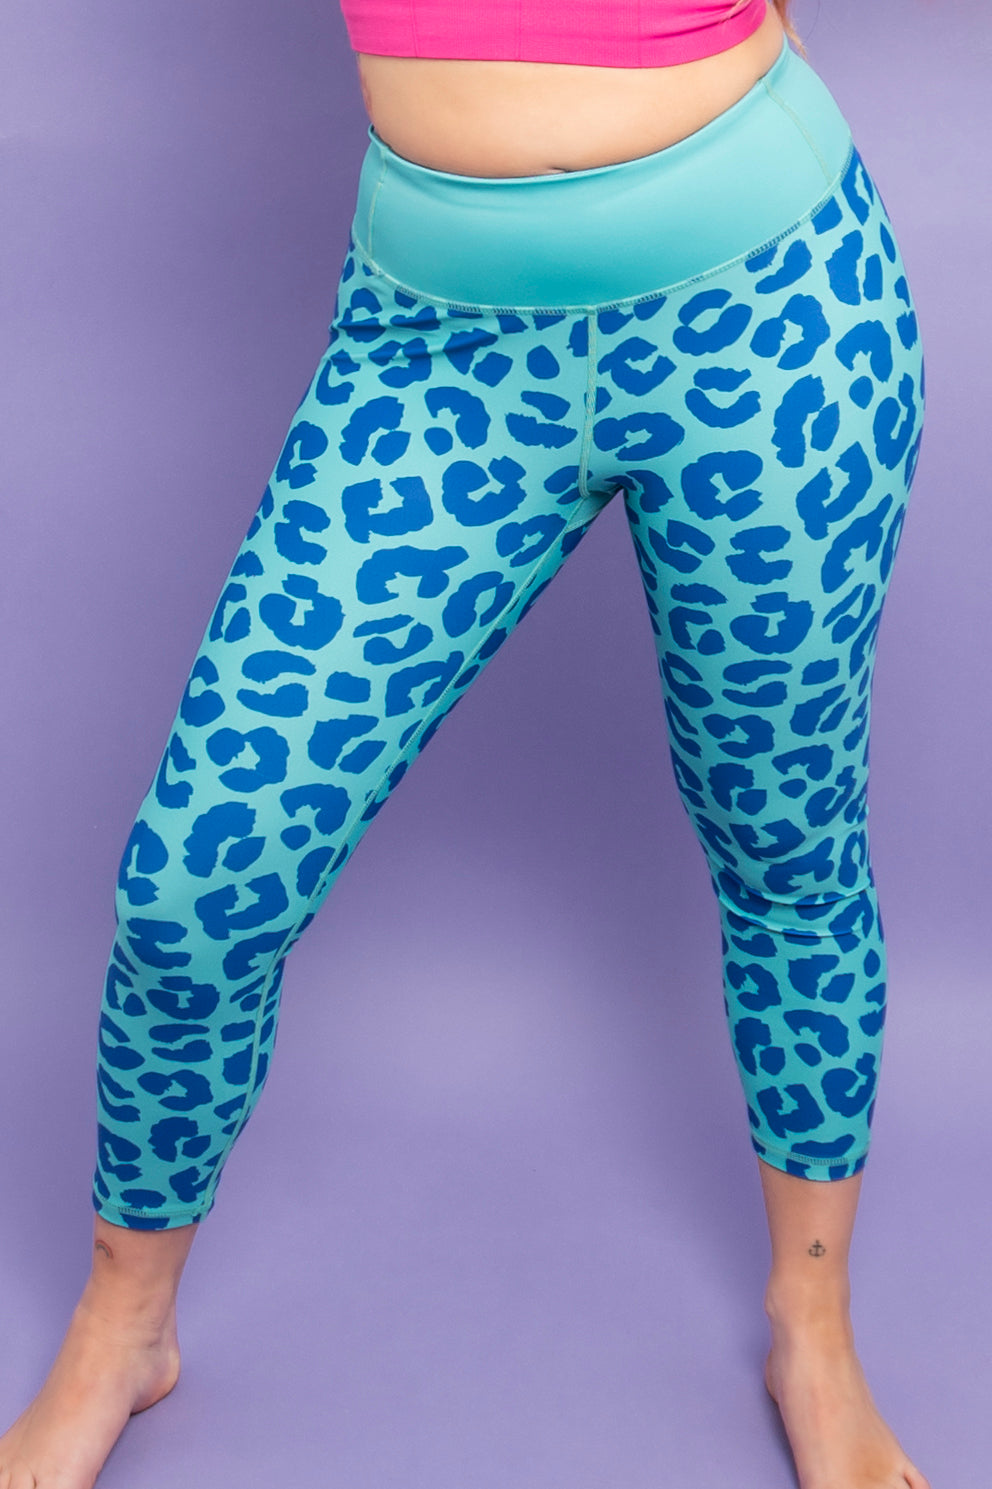 Teal & Navy Leopard Capri Women's Activewear Leggings